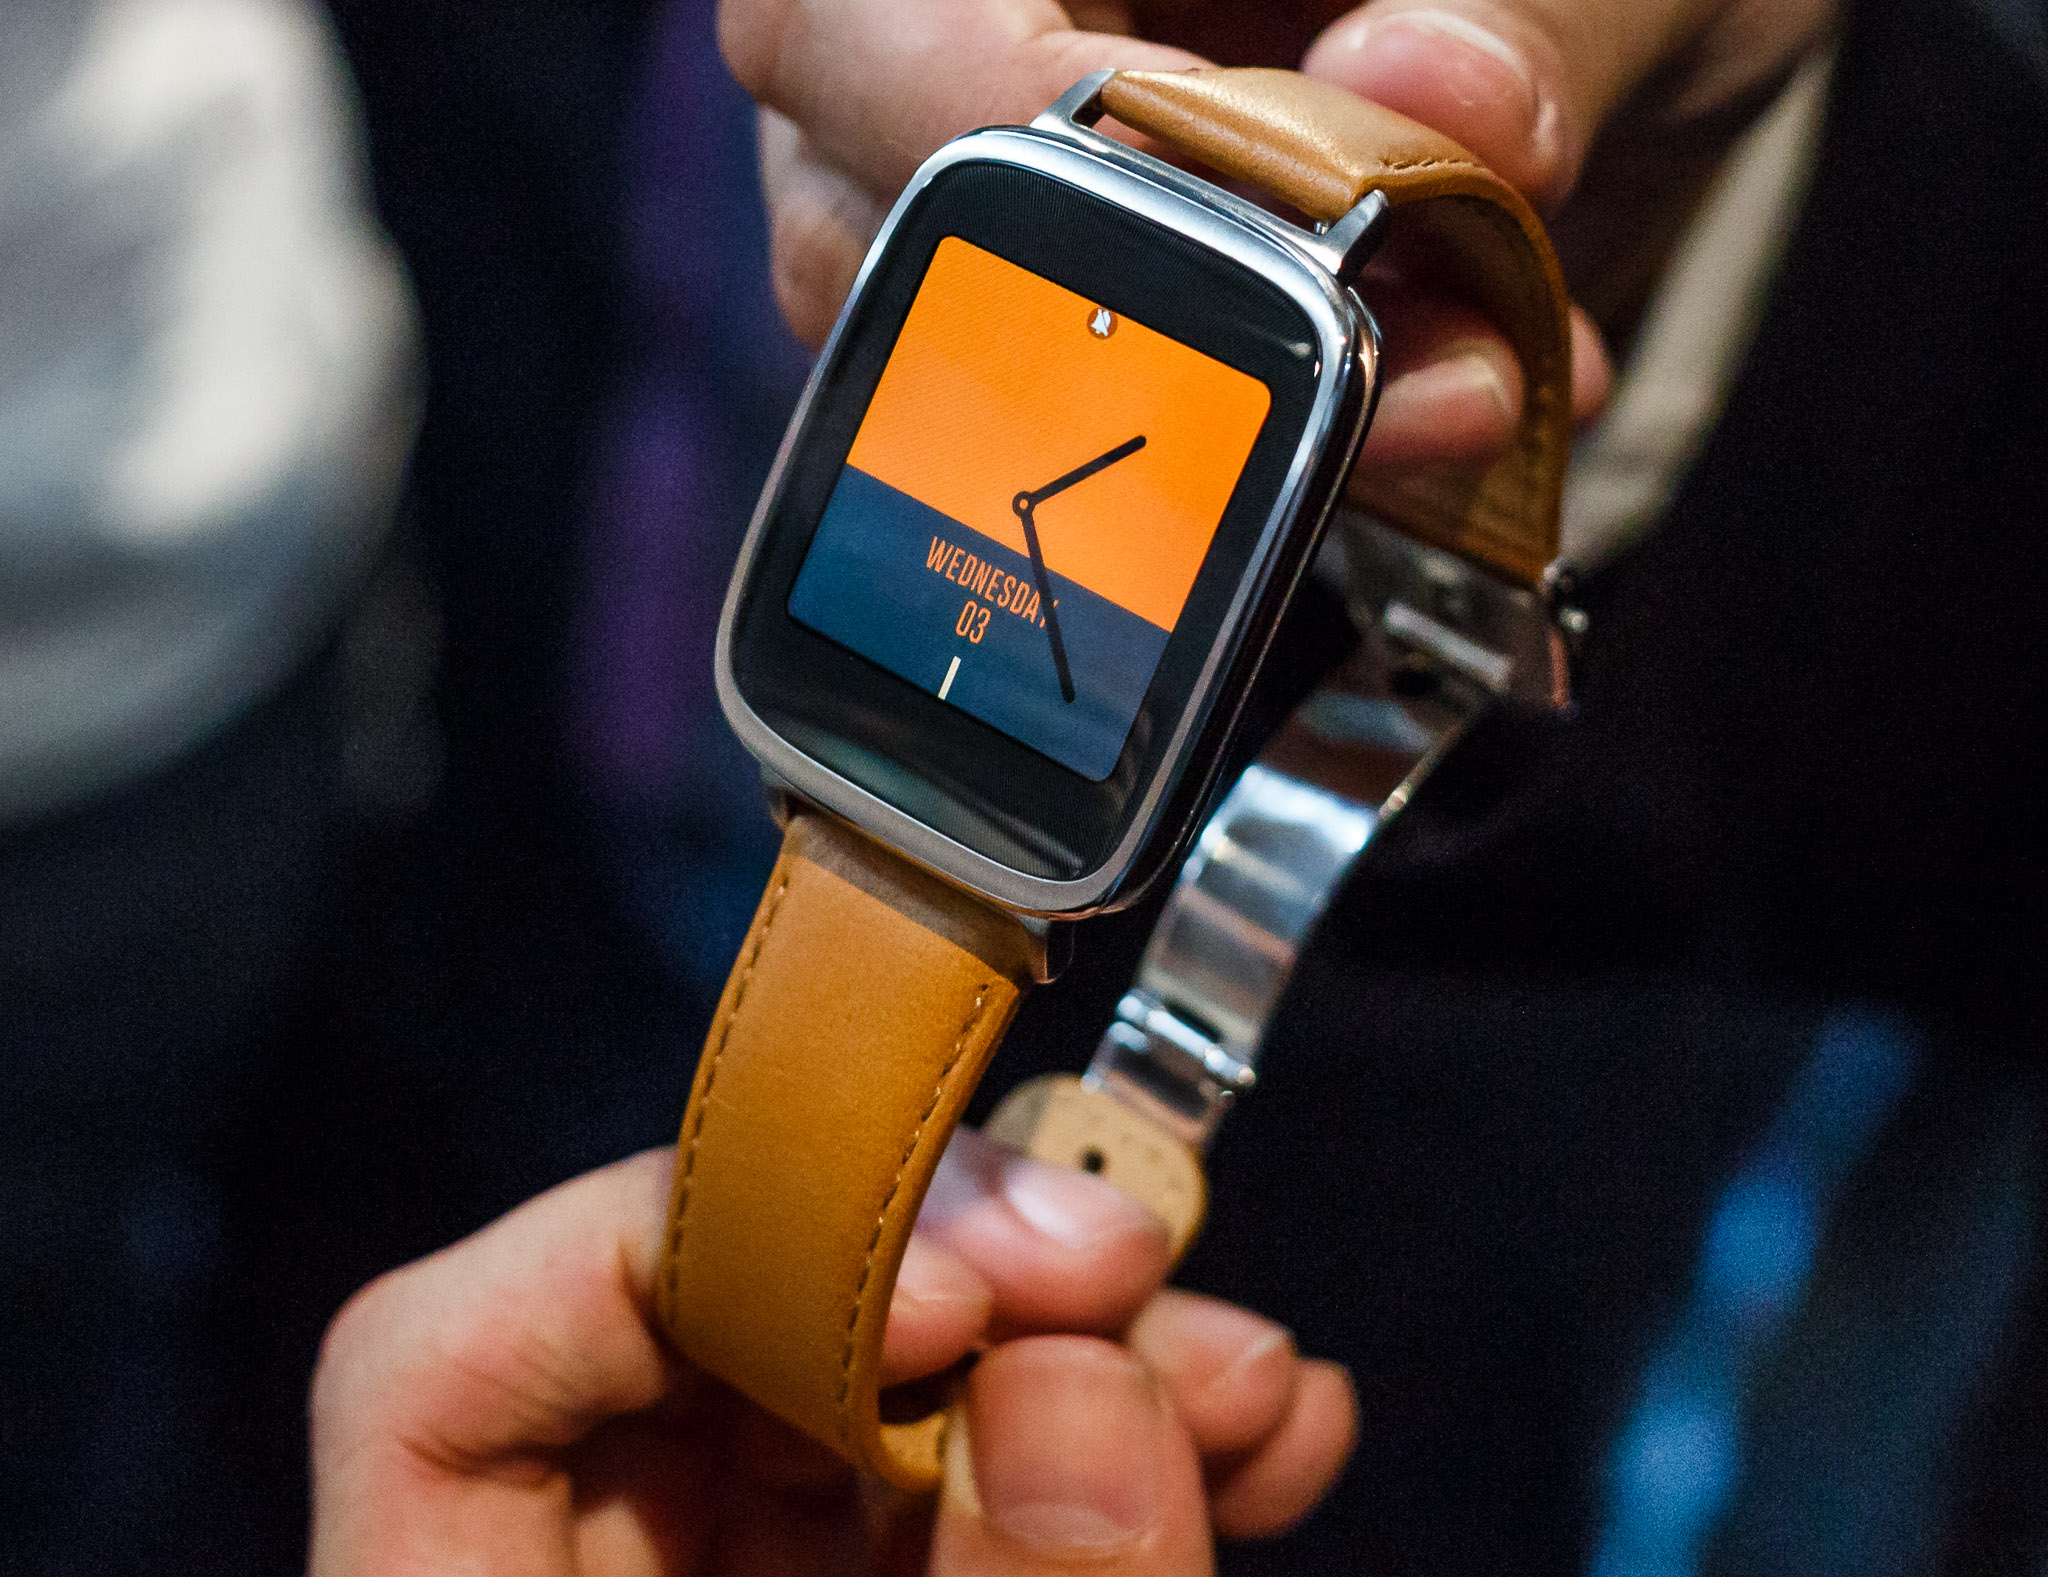 Asus debuted its ZenWatch, an Android Wear device, at the IFA electronics show in Berlin.